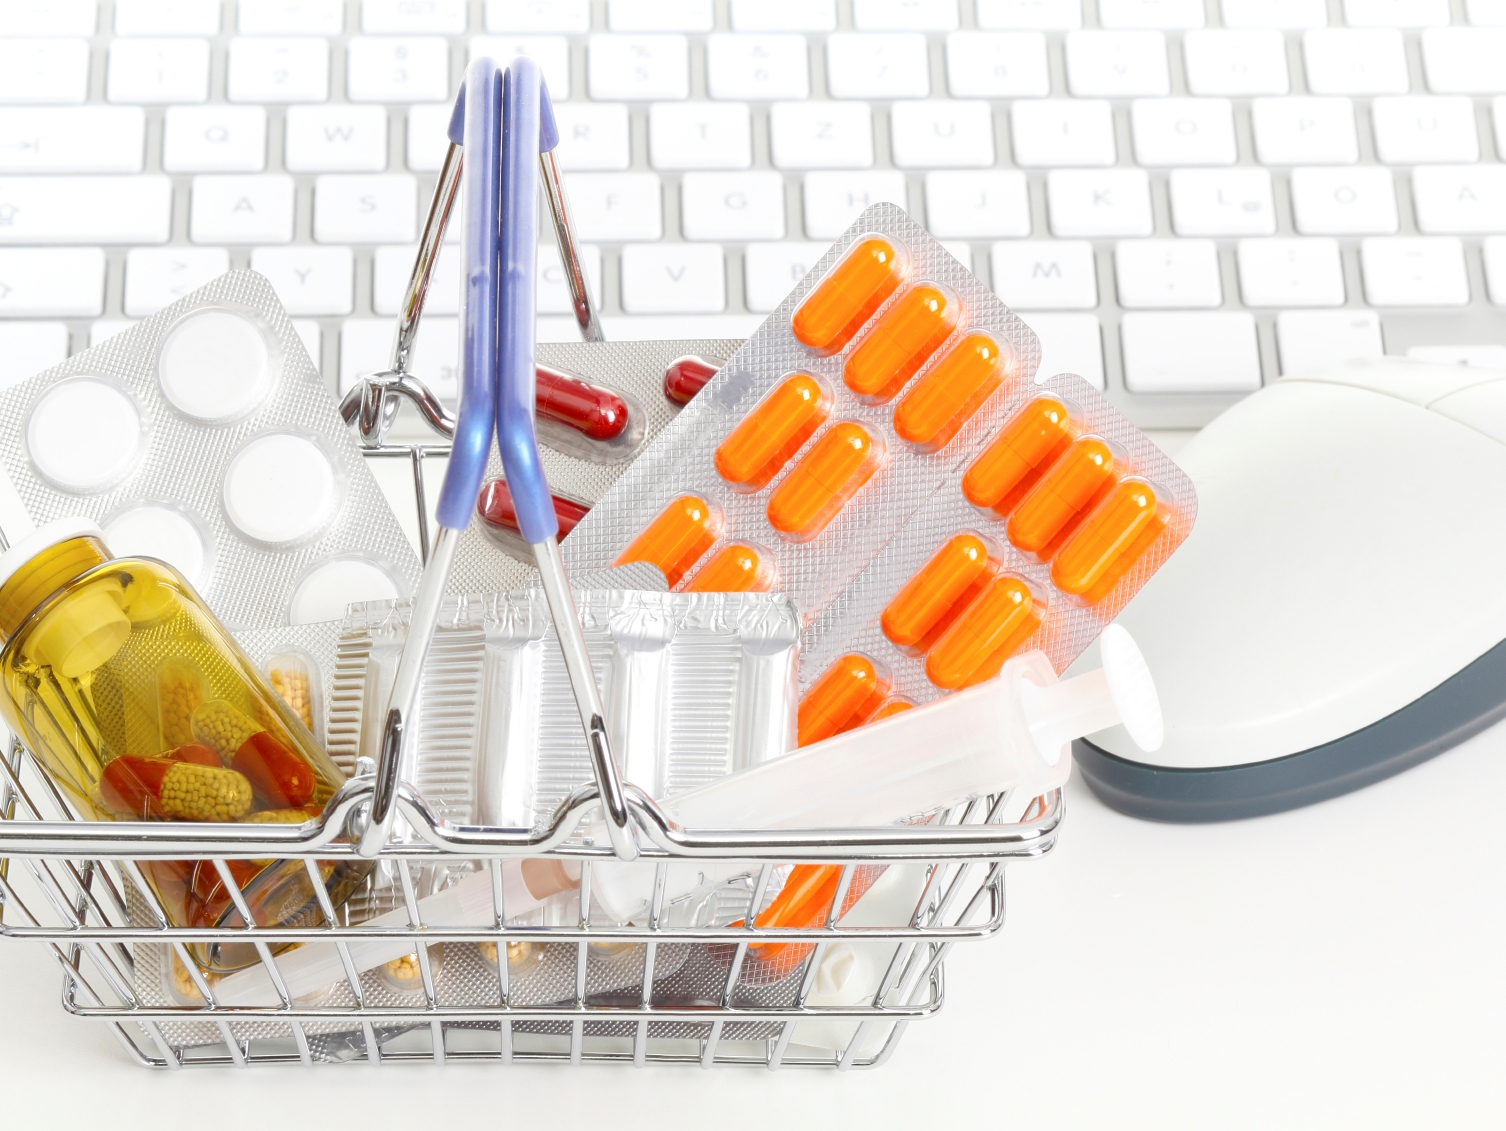 Online Pharmacy Qualities - Top 10 Tips on Before Buying Prescription Drugs Online.